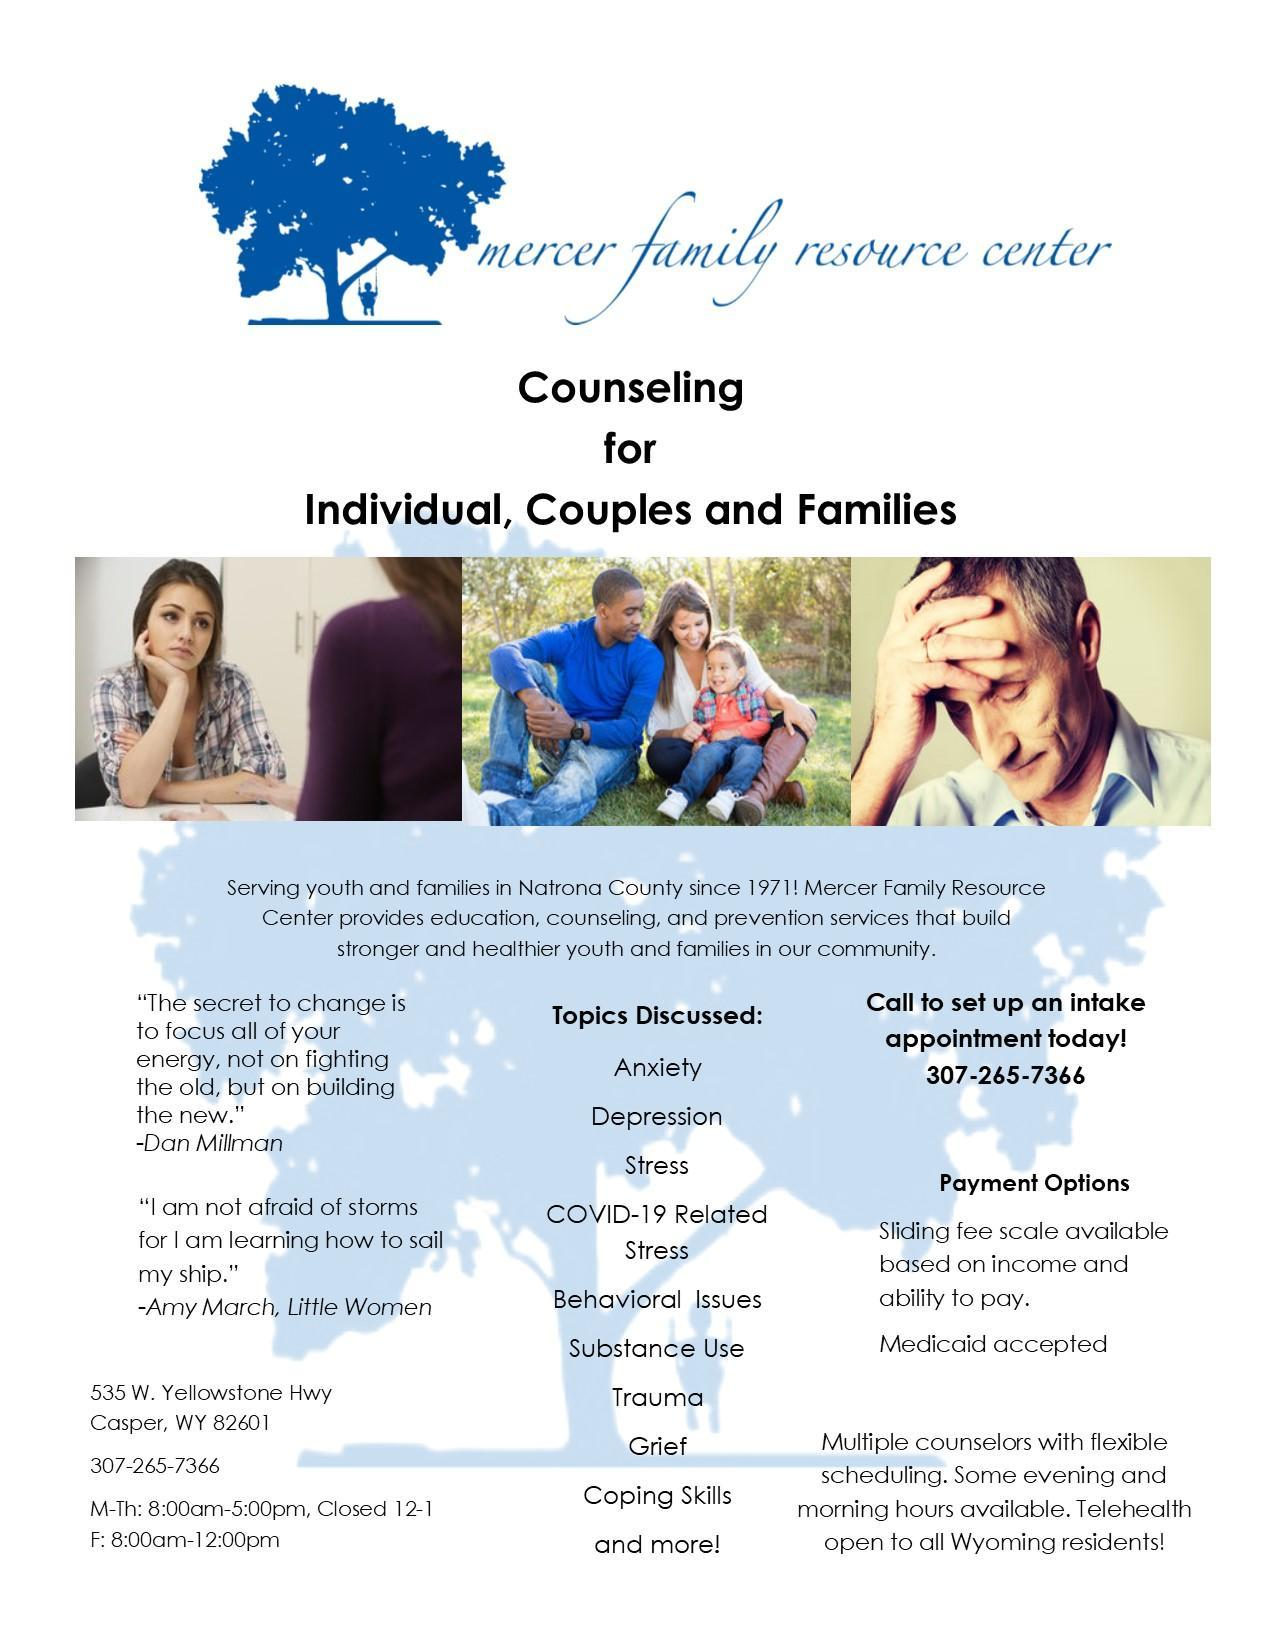 Mercer Family Resource Center Counseling Flyer